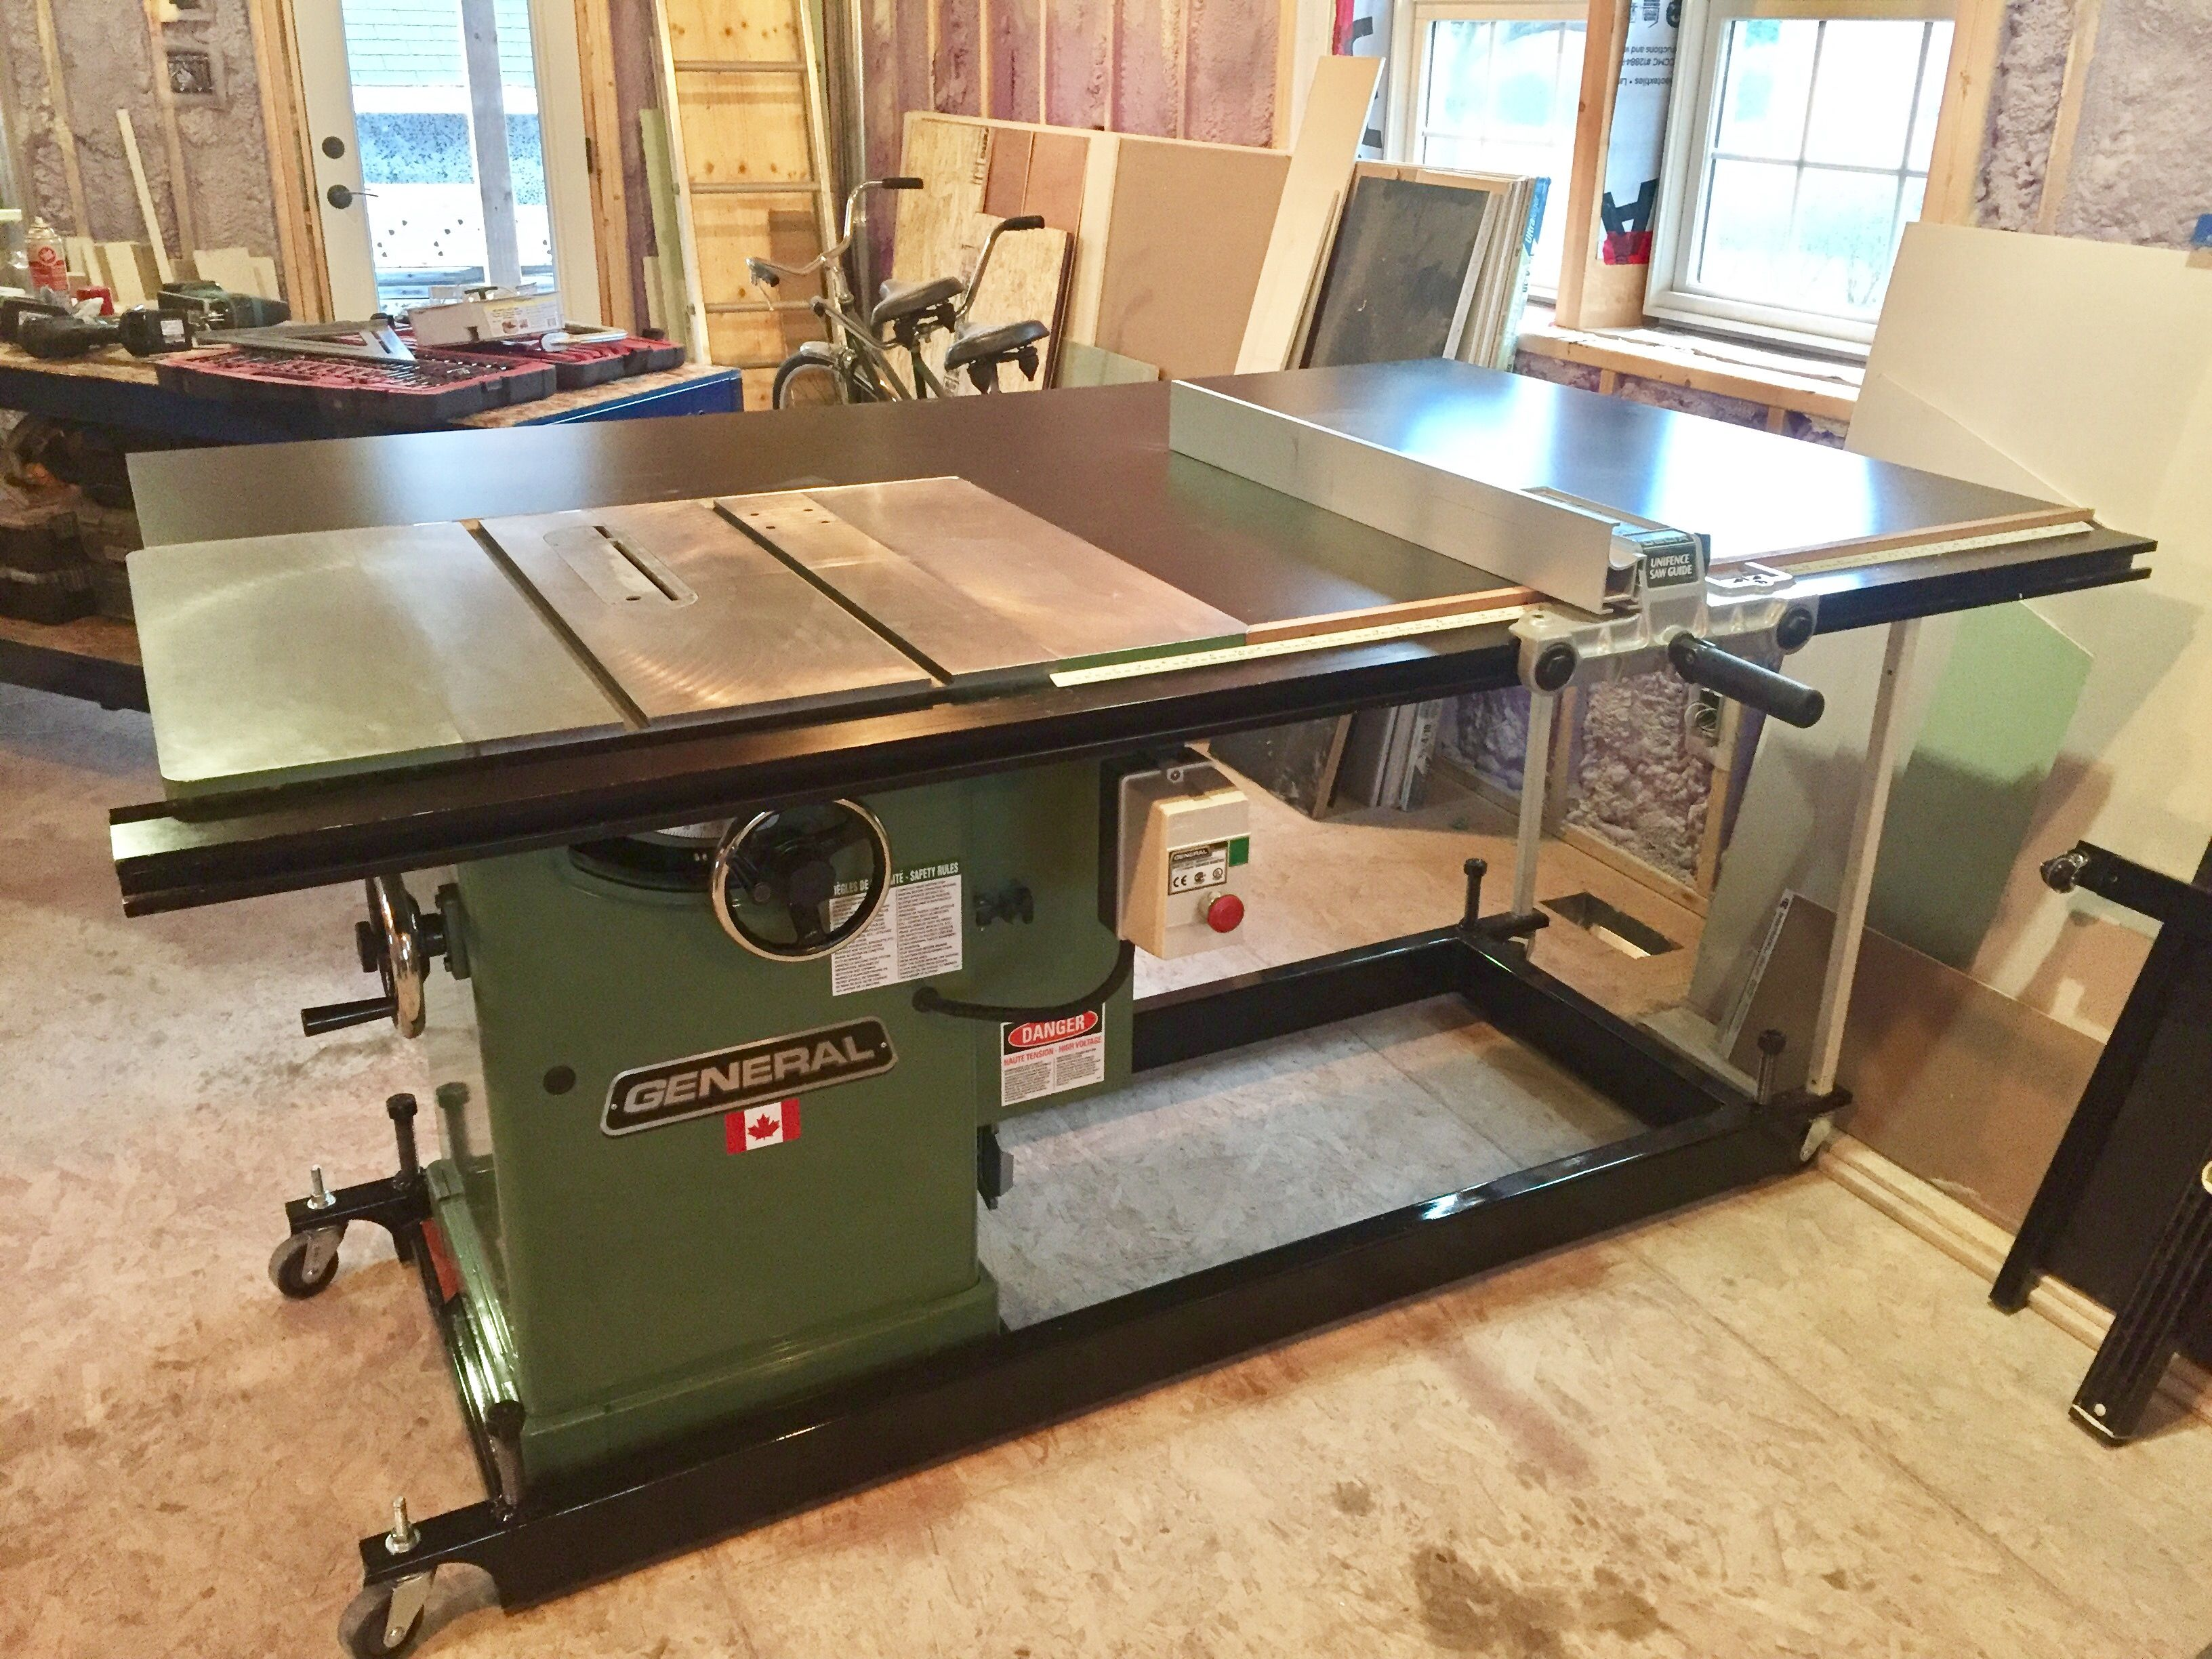 General 350 Cabinet Saw Cabinet Table Saw Table Saw Portable Table Saw